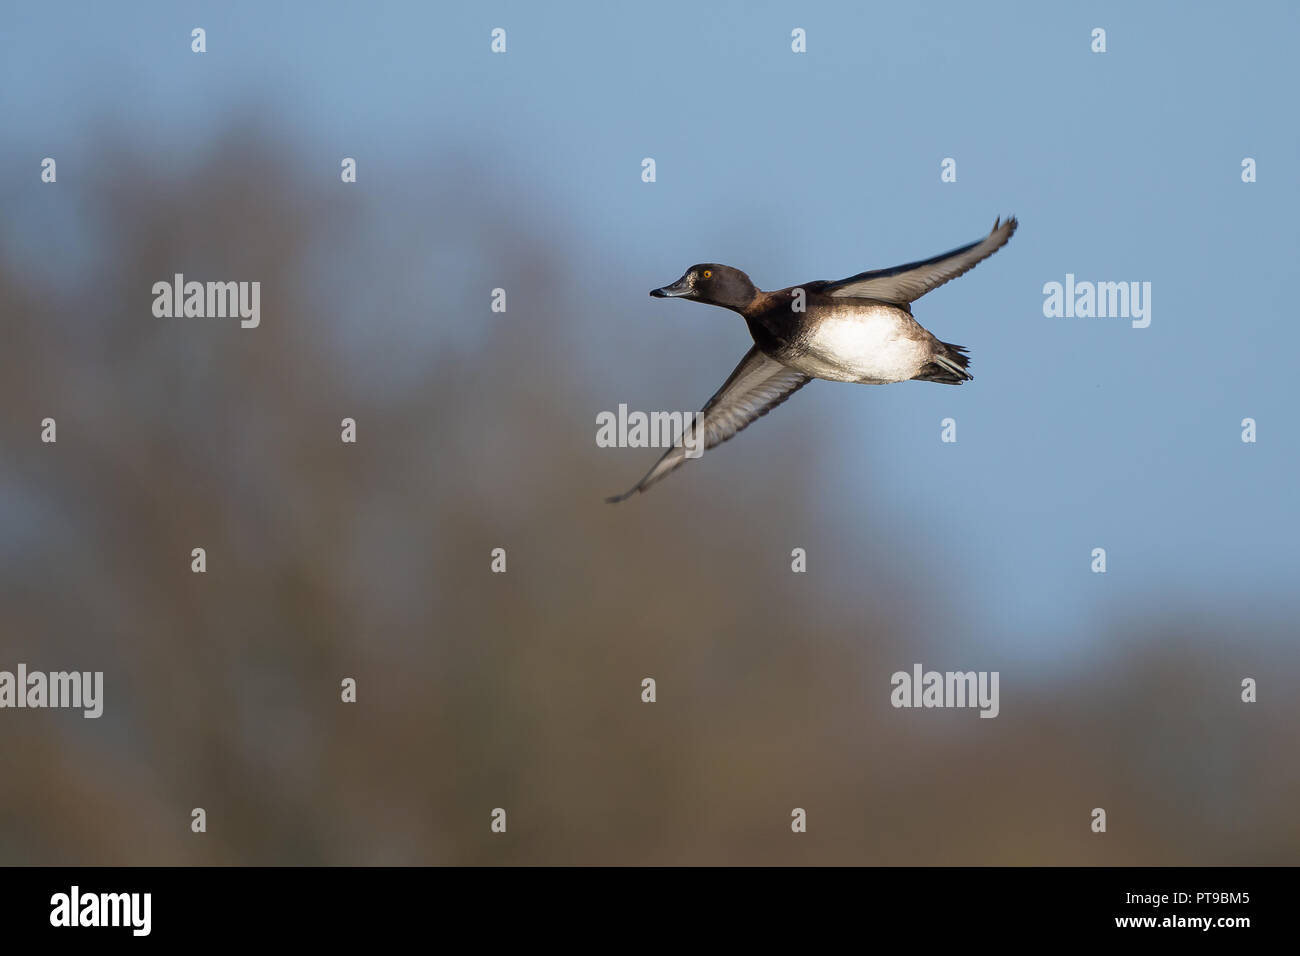 Landscape capture of a single, wild tufted duck (Aythya fuligula) in flight, wings out to the side as if soaring or gliding in the air. Adult female. - Stock Image